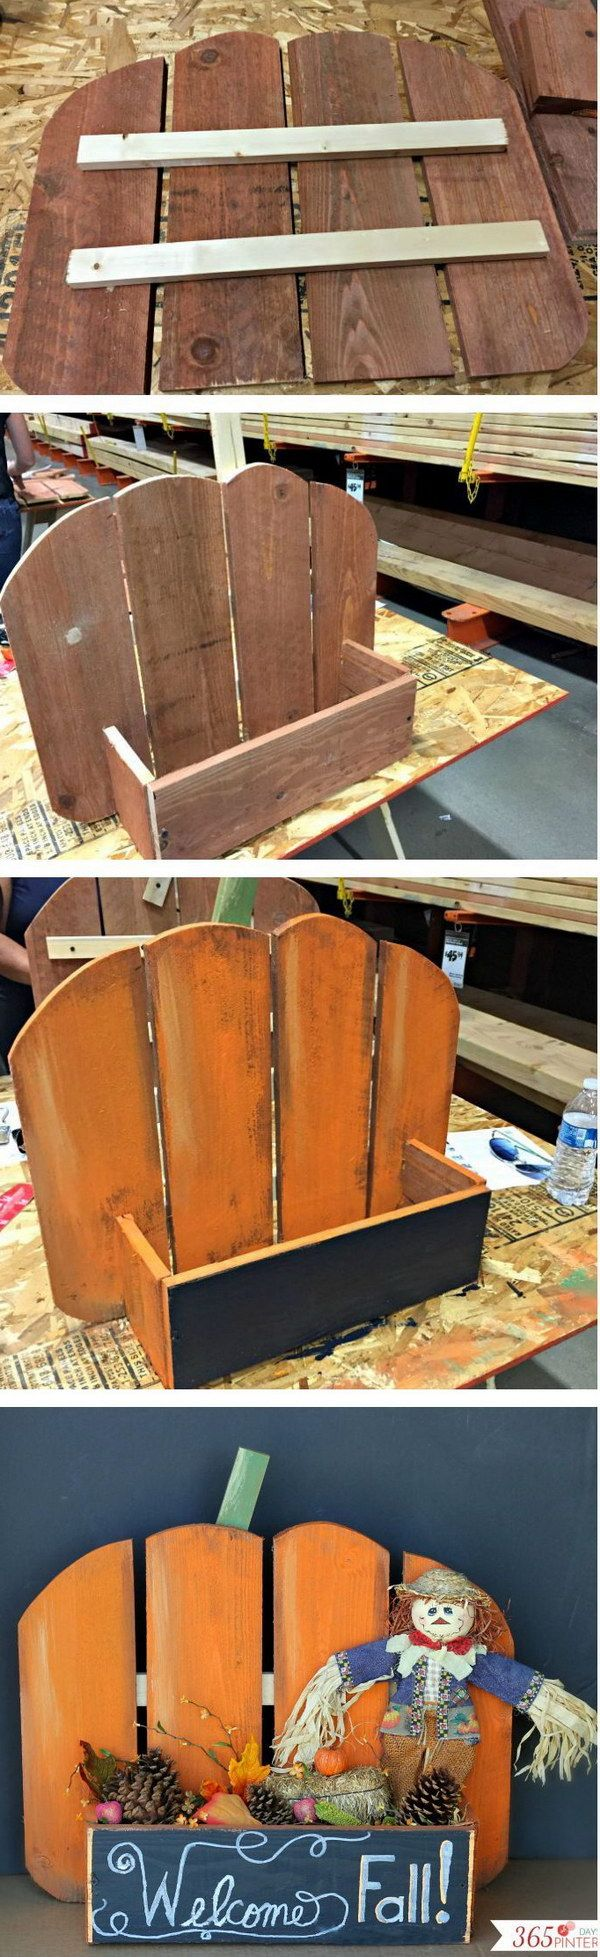 Diy pallets of wood 30 plans and projects pallet furniture ideas - 30 Diy Fall Thanksgiving Decoration Ideas